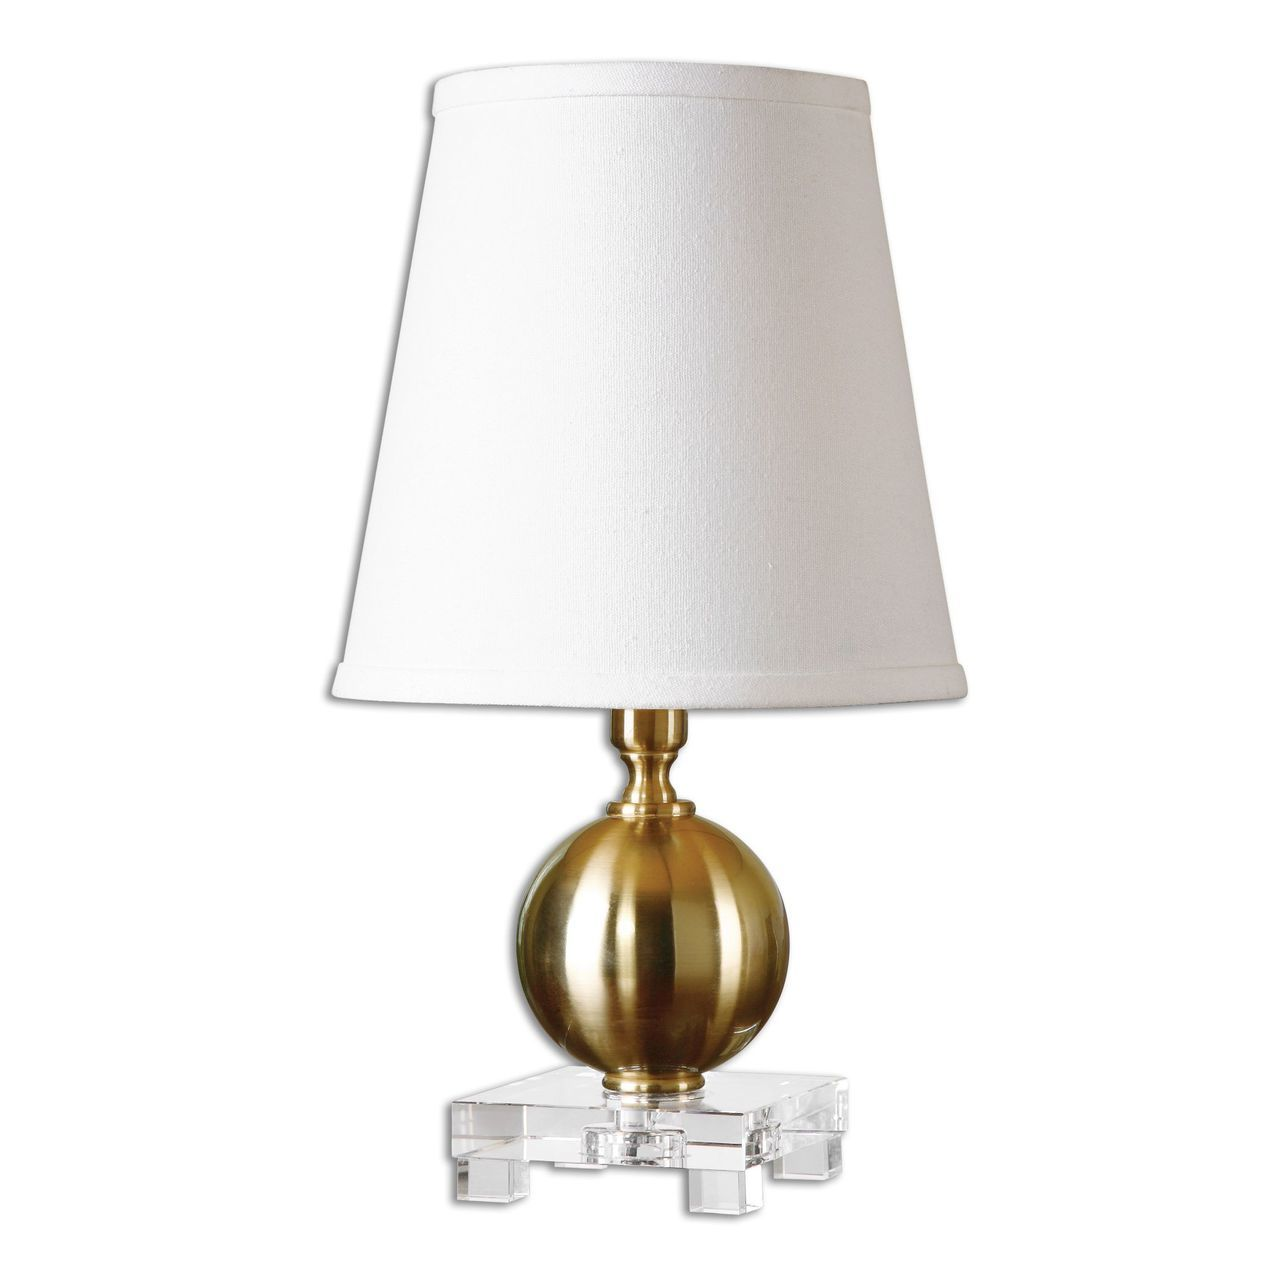 uttermost laton mini brushed brass table lamp value brothers mirrored accent plated metal accented with thick kitchen lucite cube meyda tiffany lamps builders lighting round pub